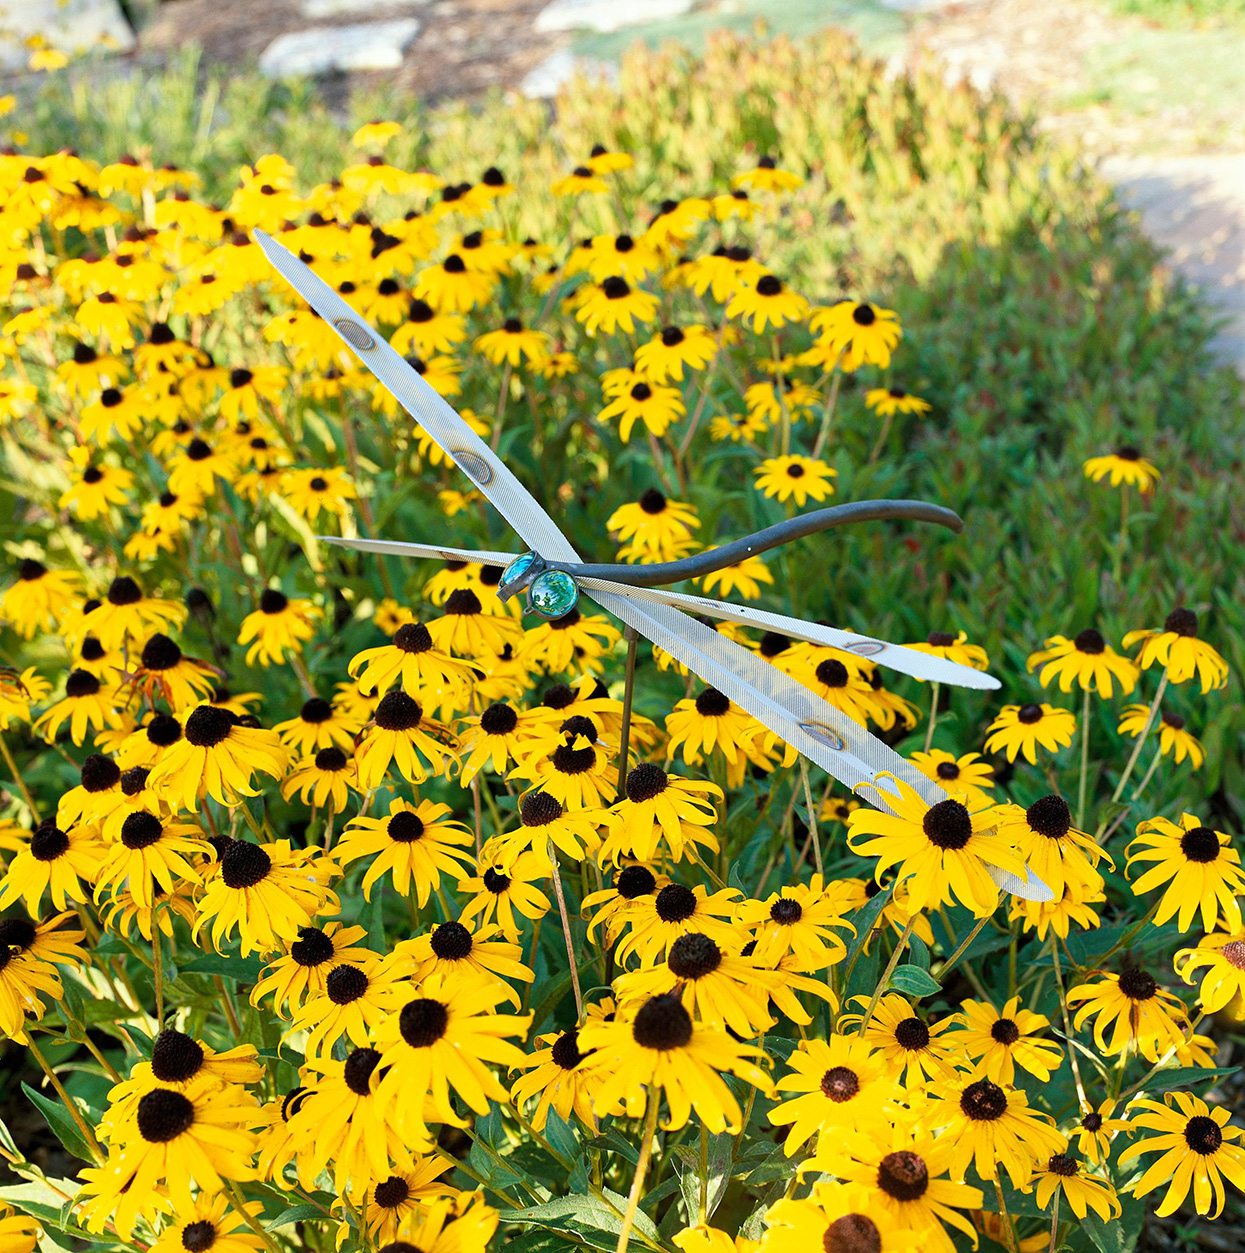 orange-yellow black-eyed susan flowers with dragonfly garden decor